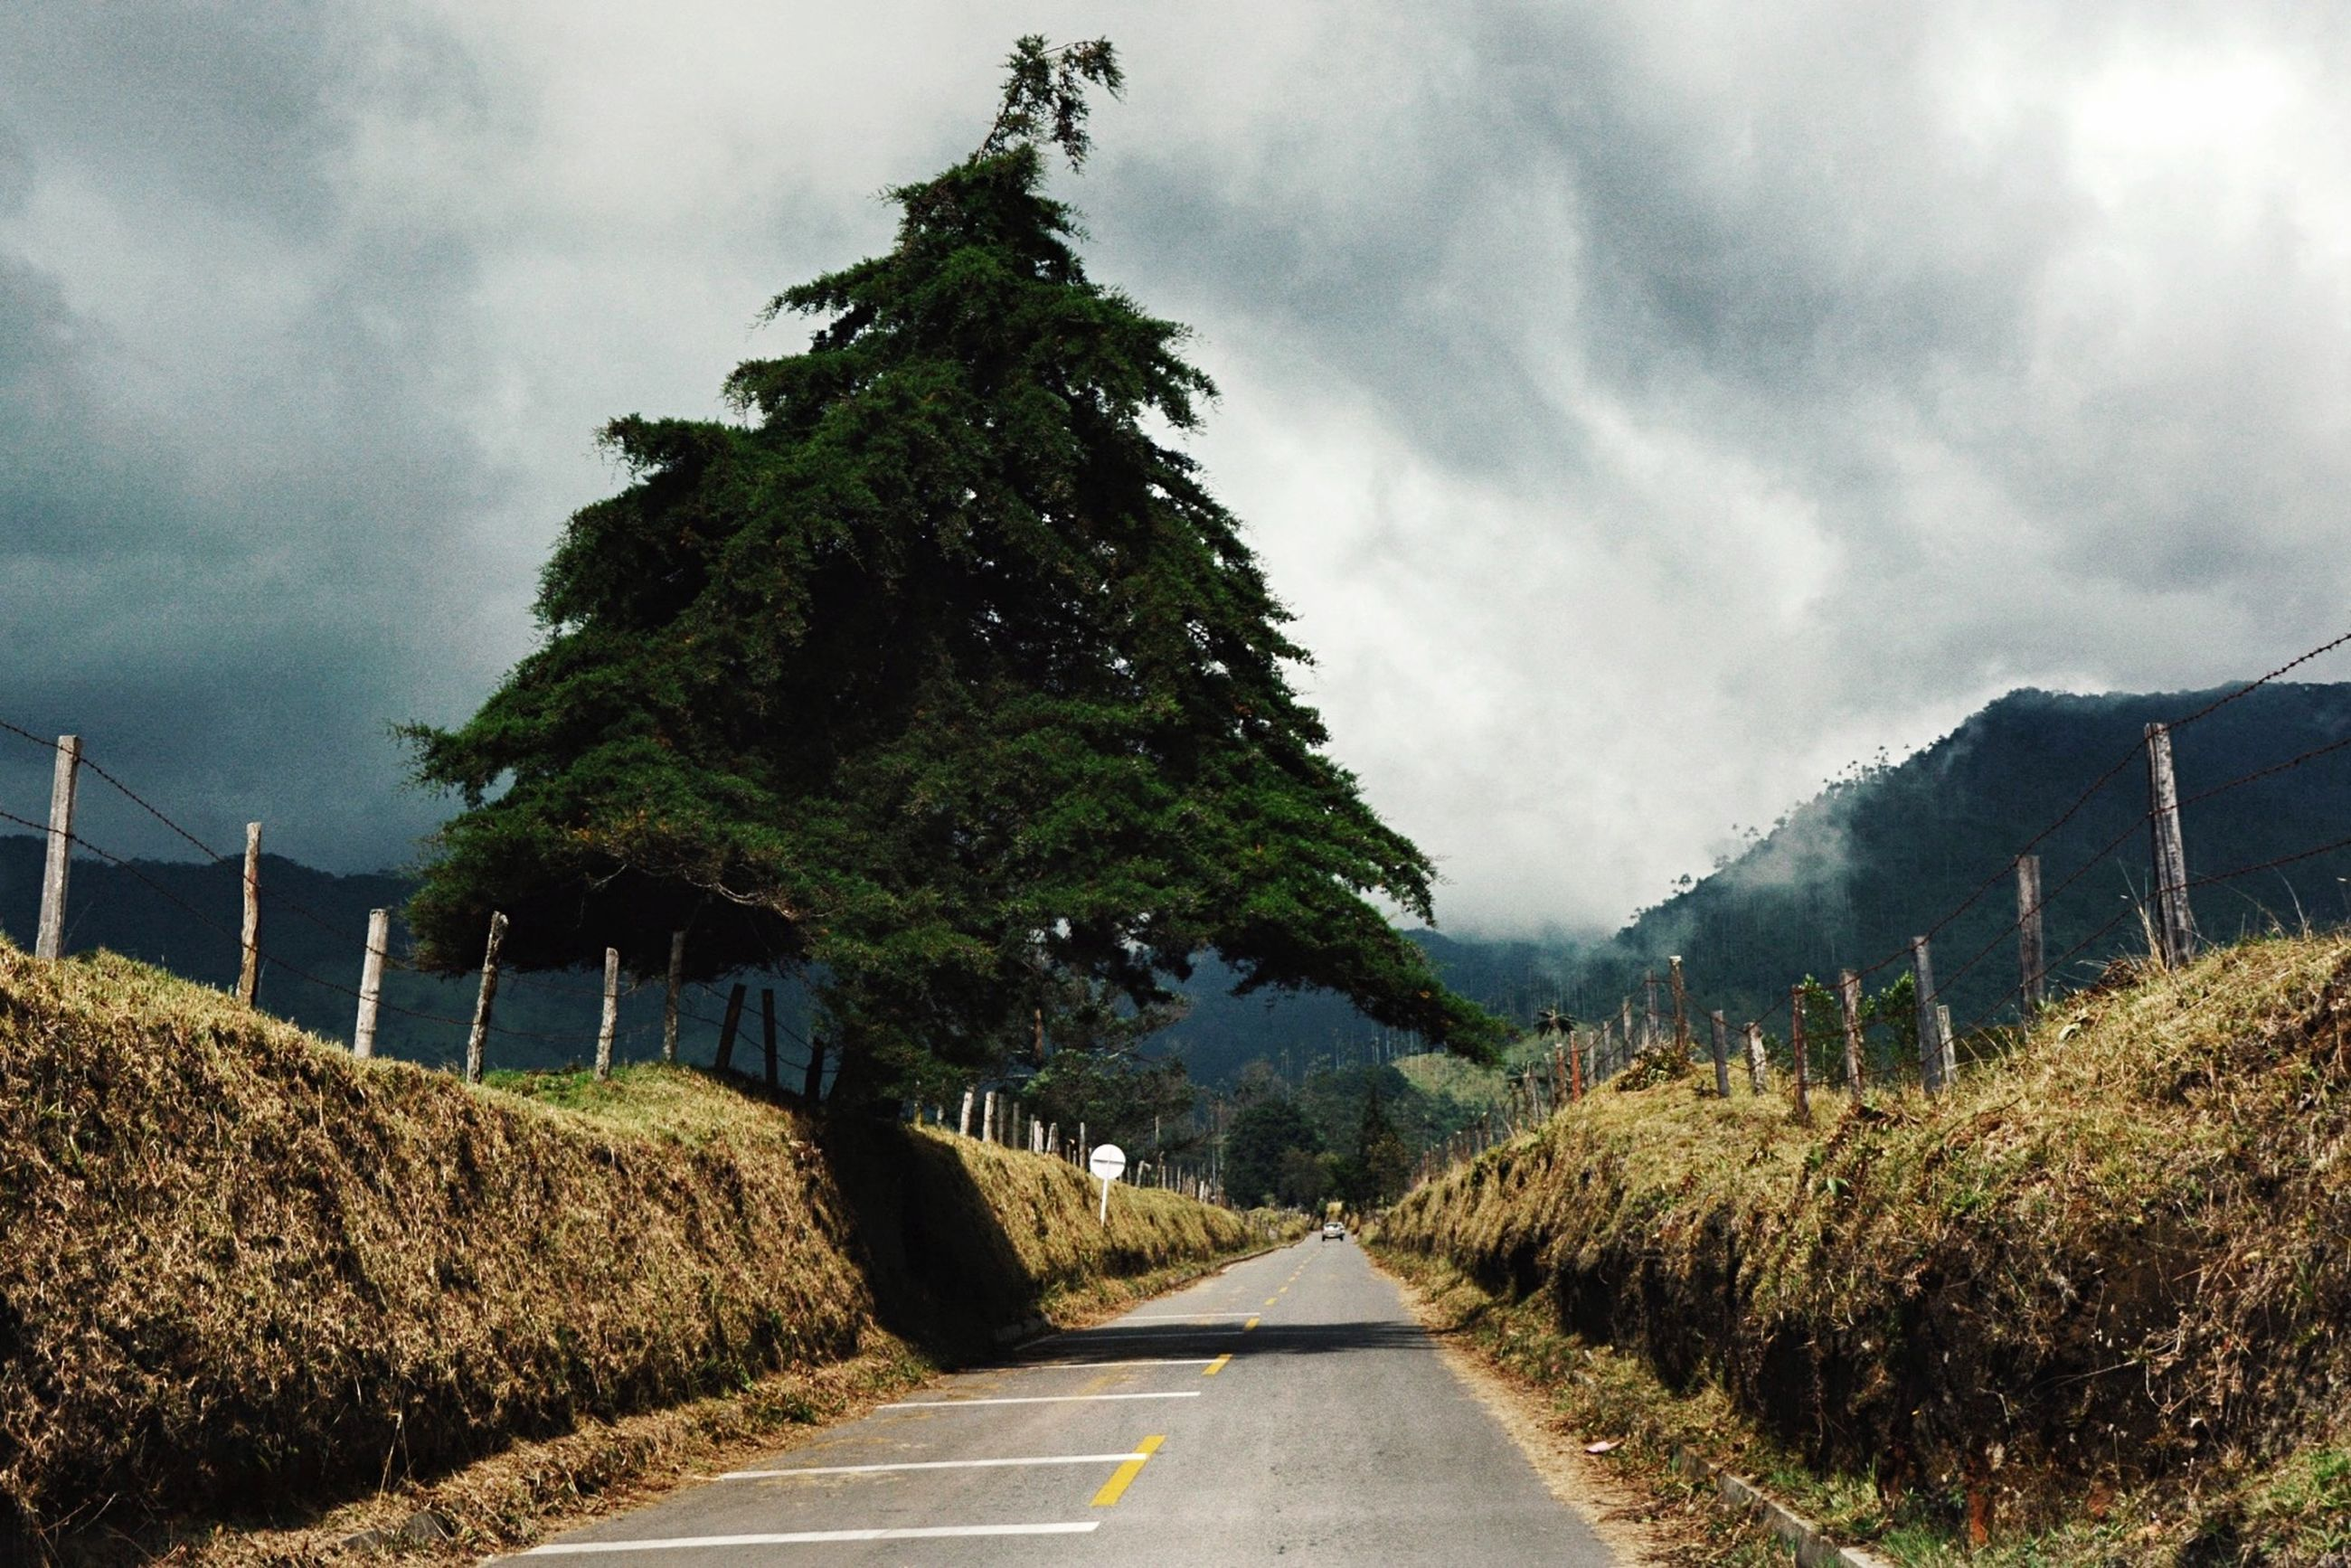 the way forward, sky, road, cloud - sky, diminishing perspective, vanishing point, cloudy, transportation, tree, cloud, tranquility, mountain, empty road, empty, tranquil scene, nature, country road, long, plant, leading